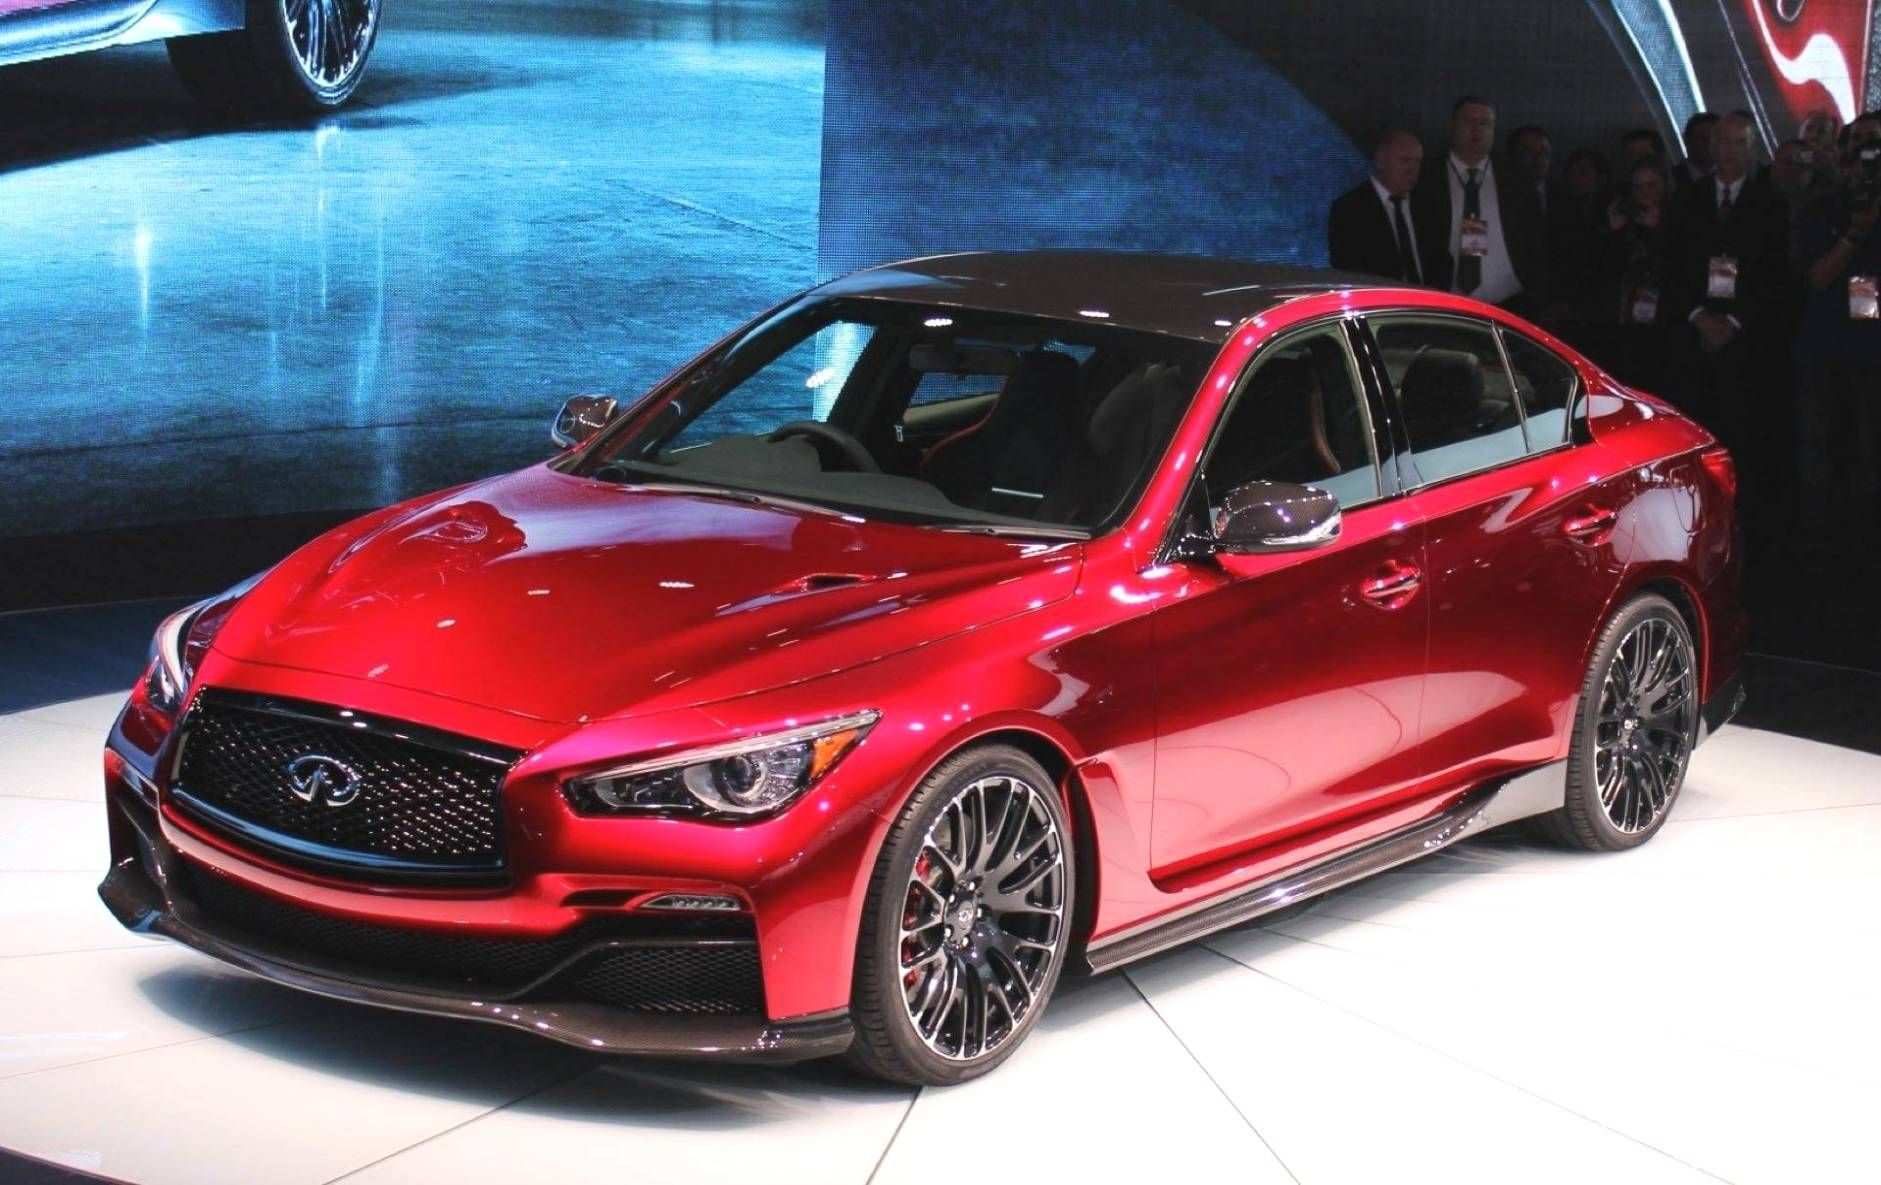 58 New 2020 Infiniti Q50 Wallpaper with 2020 Infiniti Q50